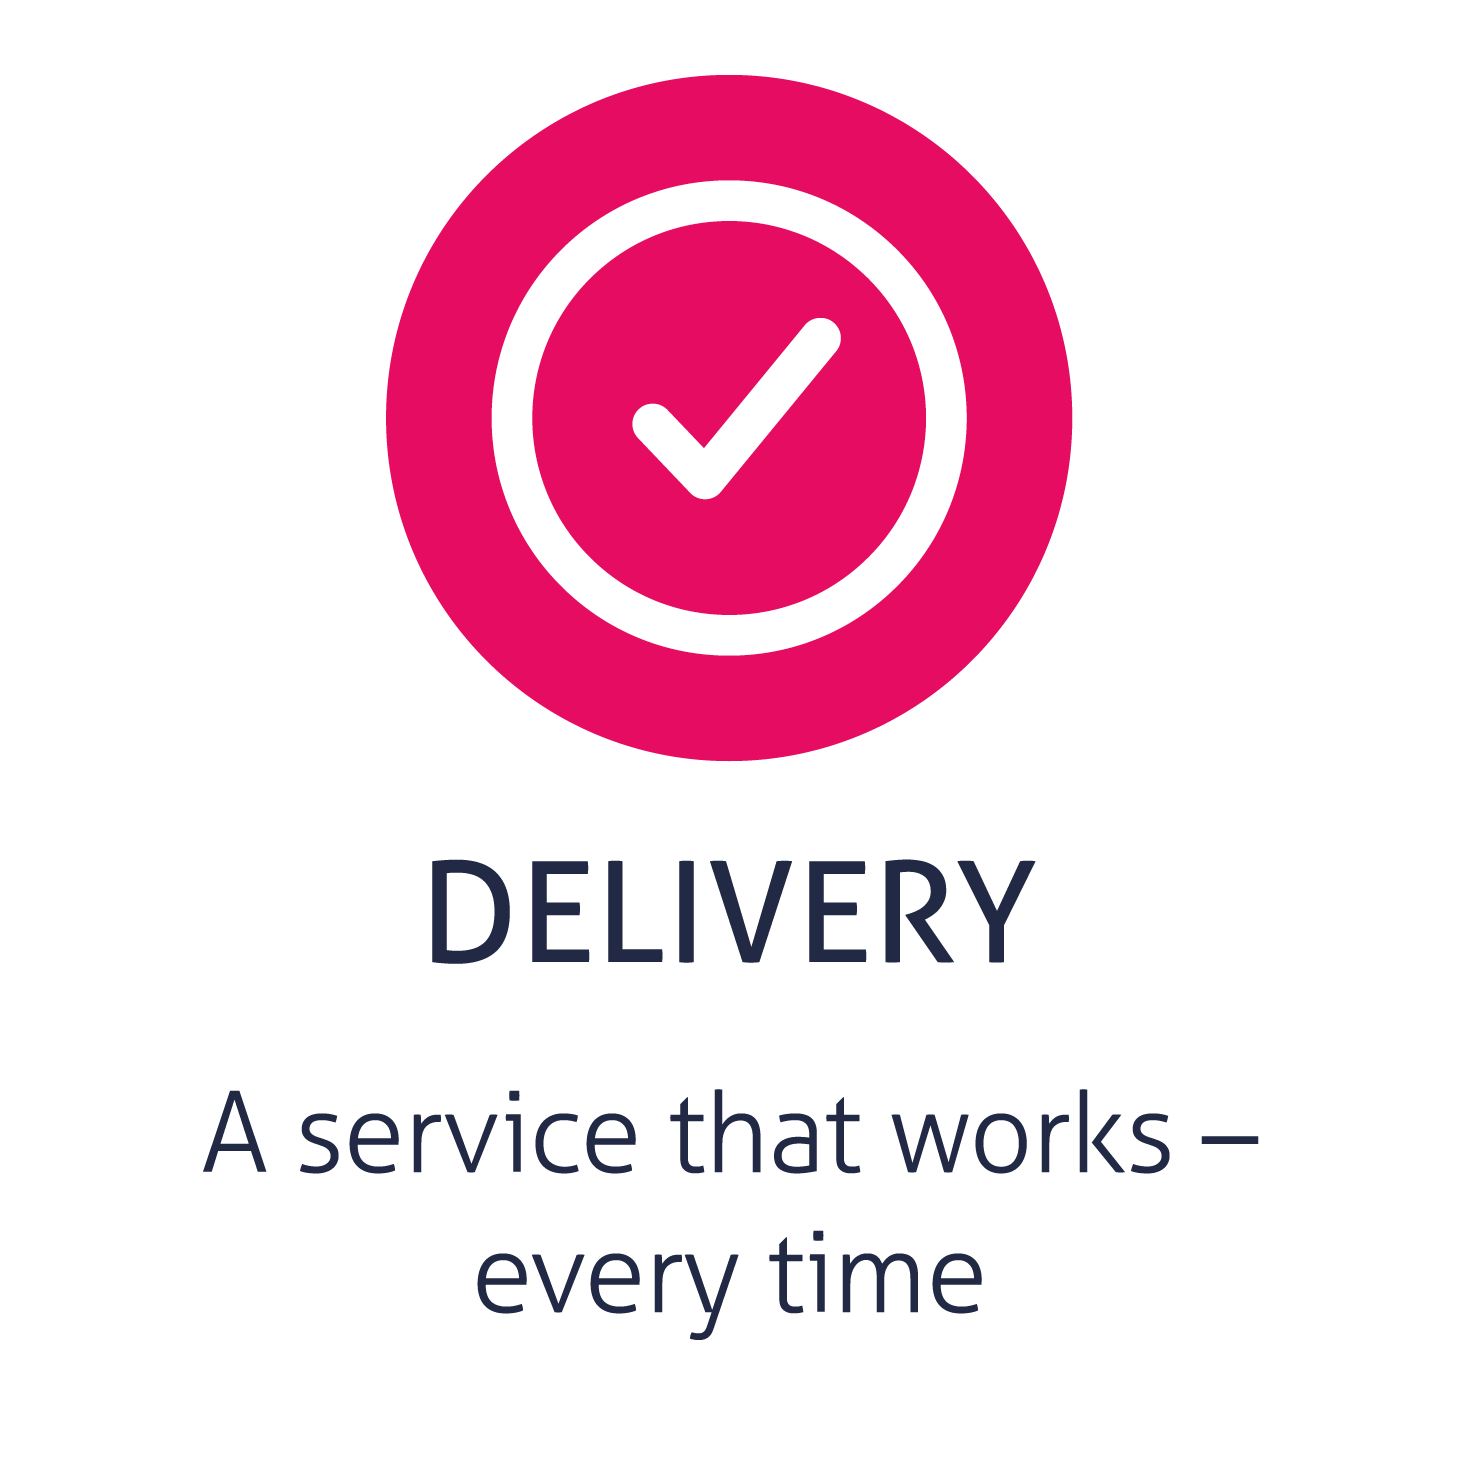 A service that works - every time